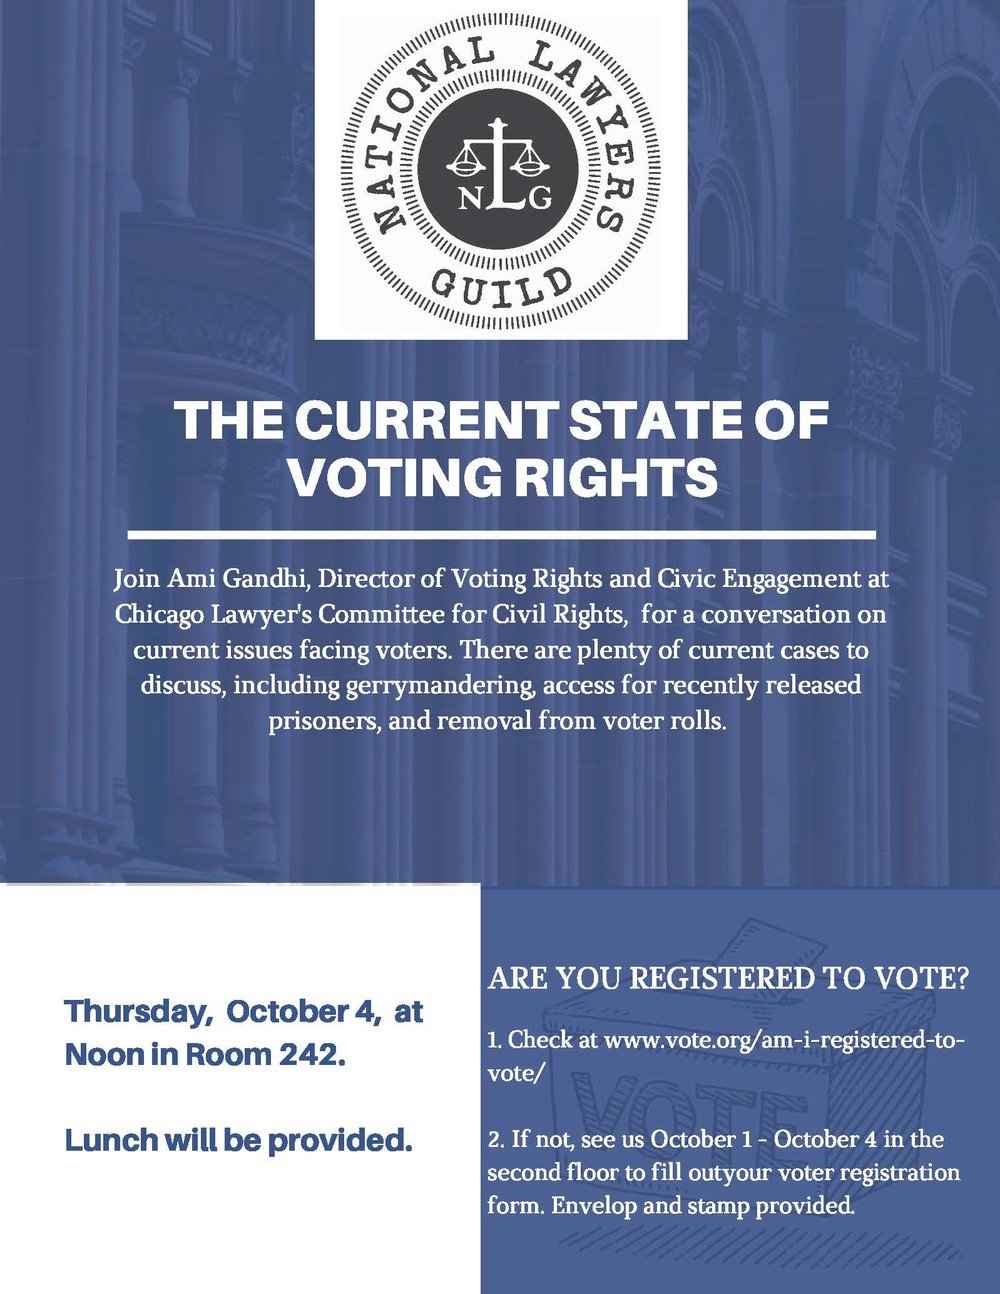 NLG DePaul Voting Rights Event.jpg